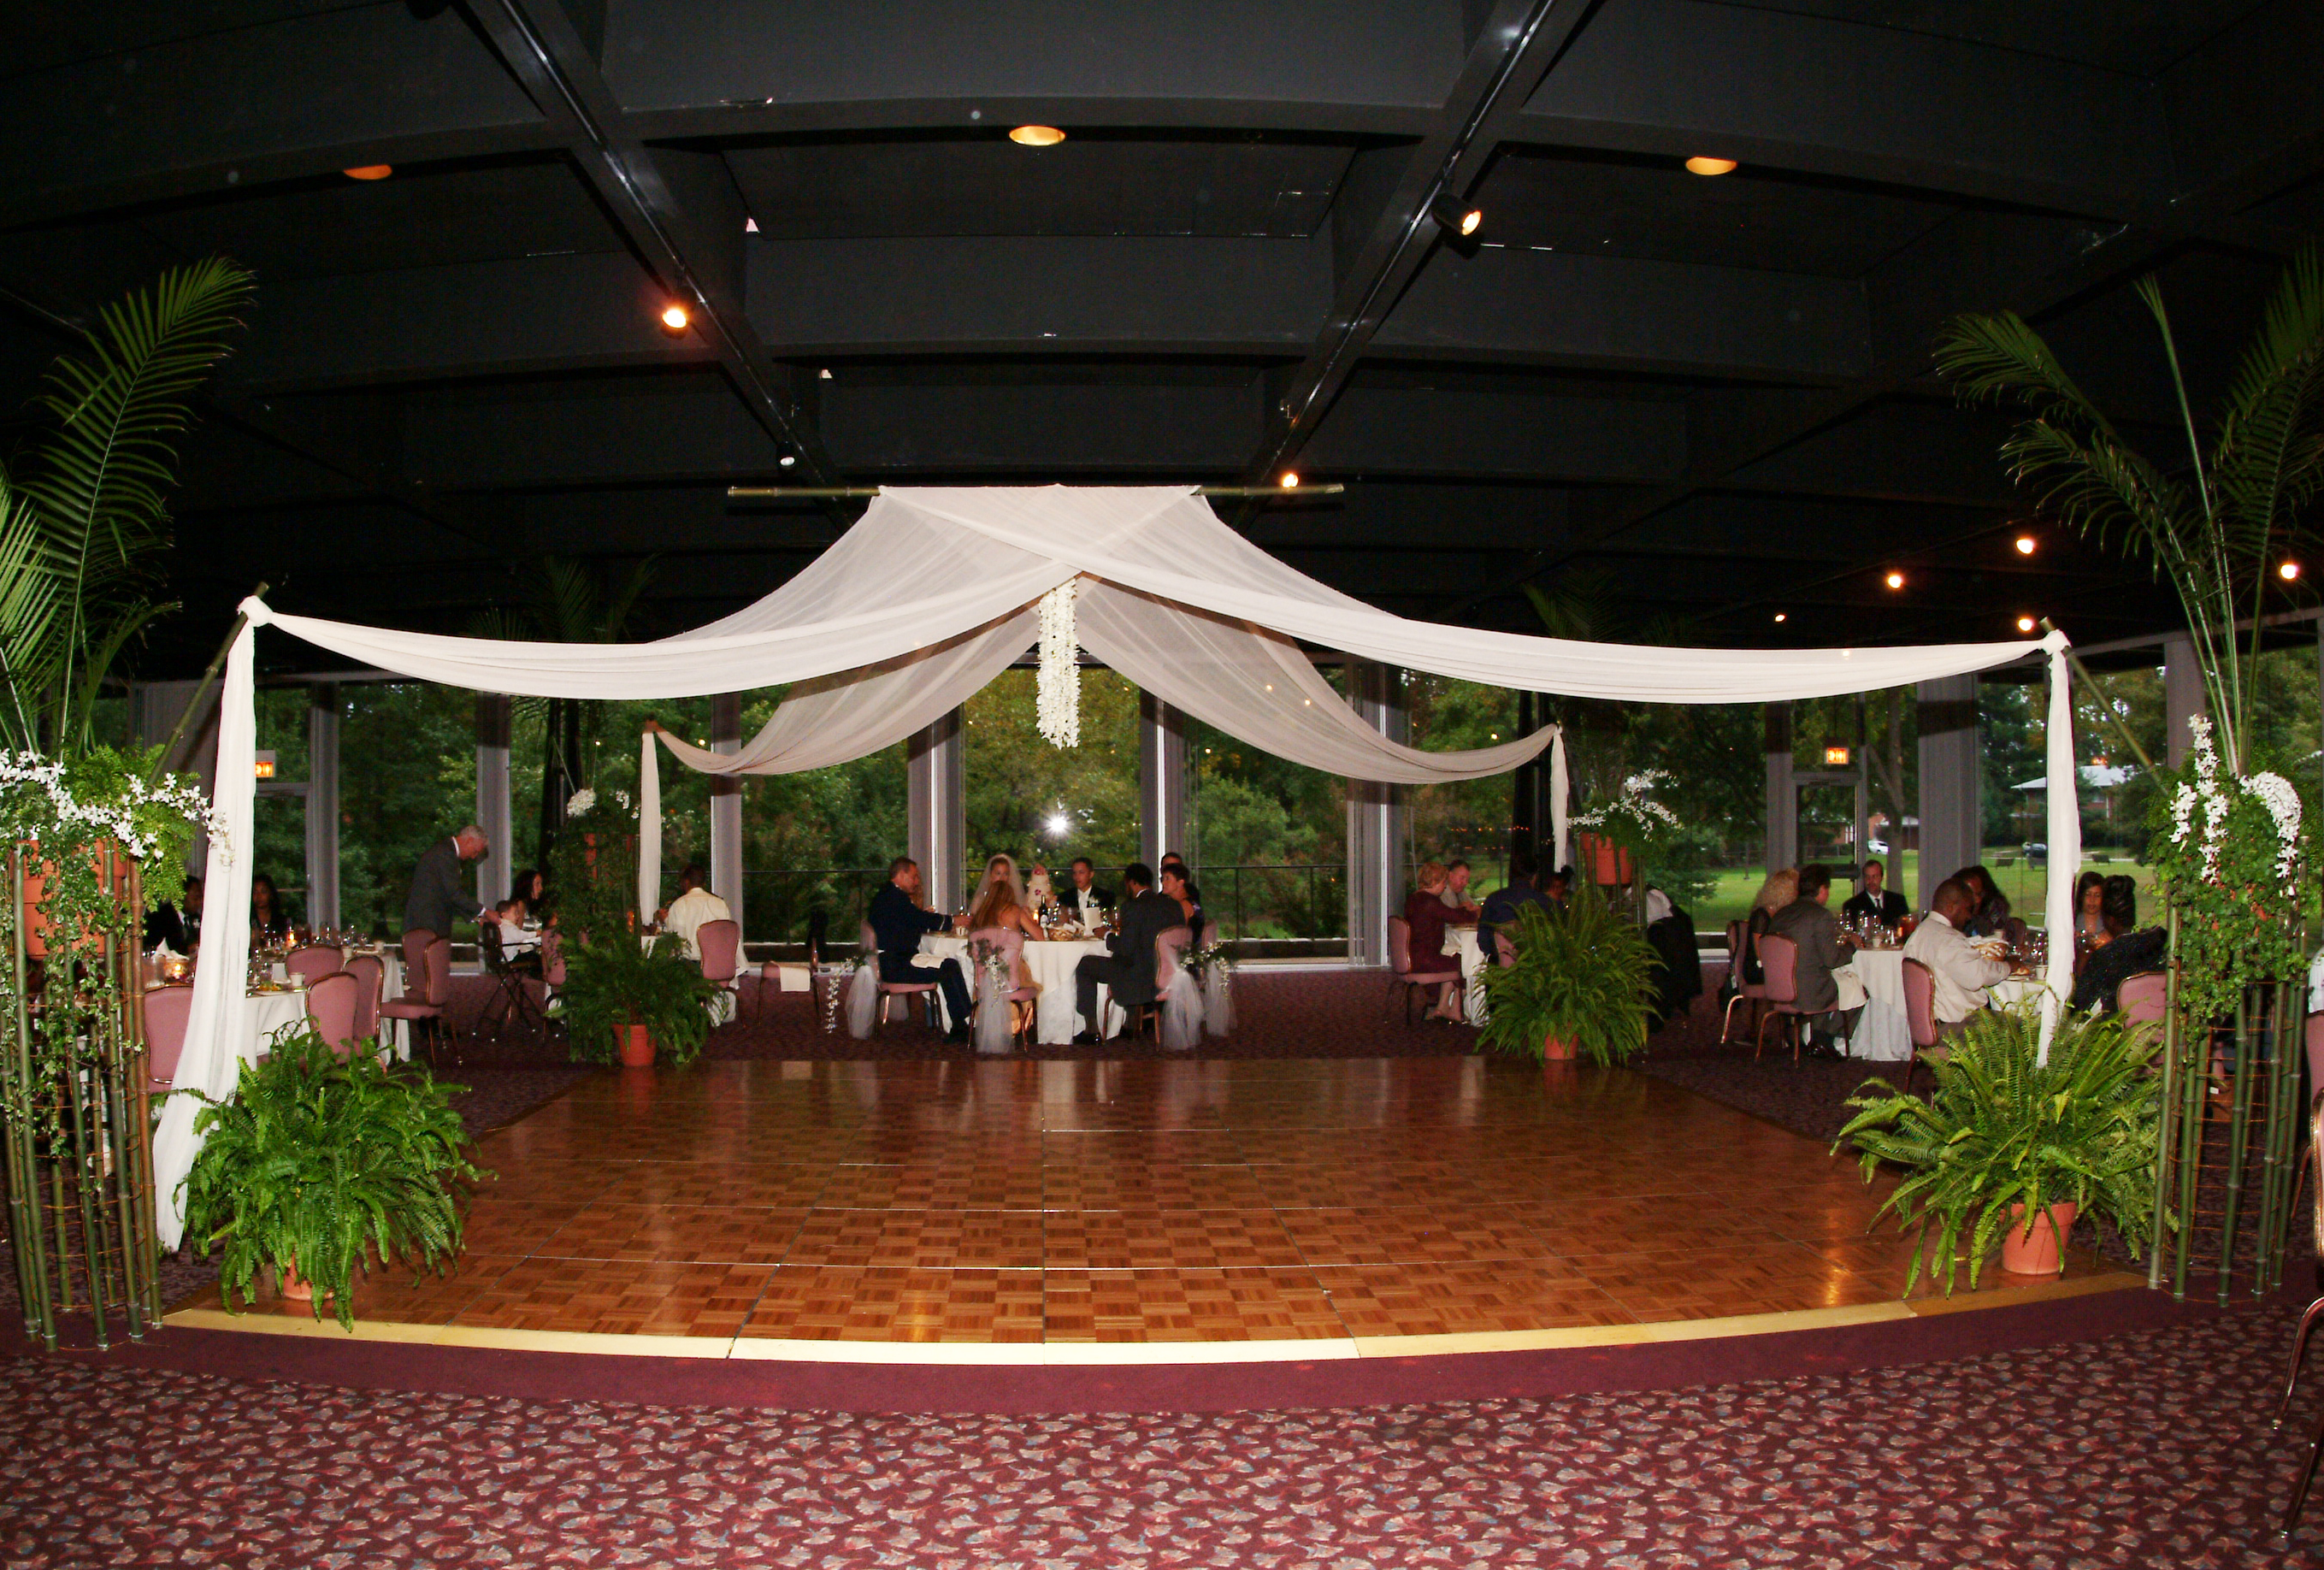 Gauze Fabric Dance Area